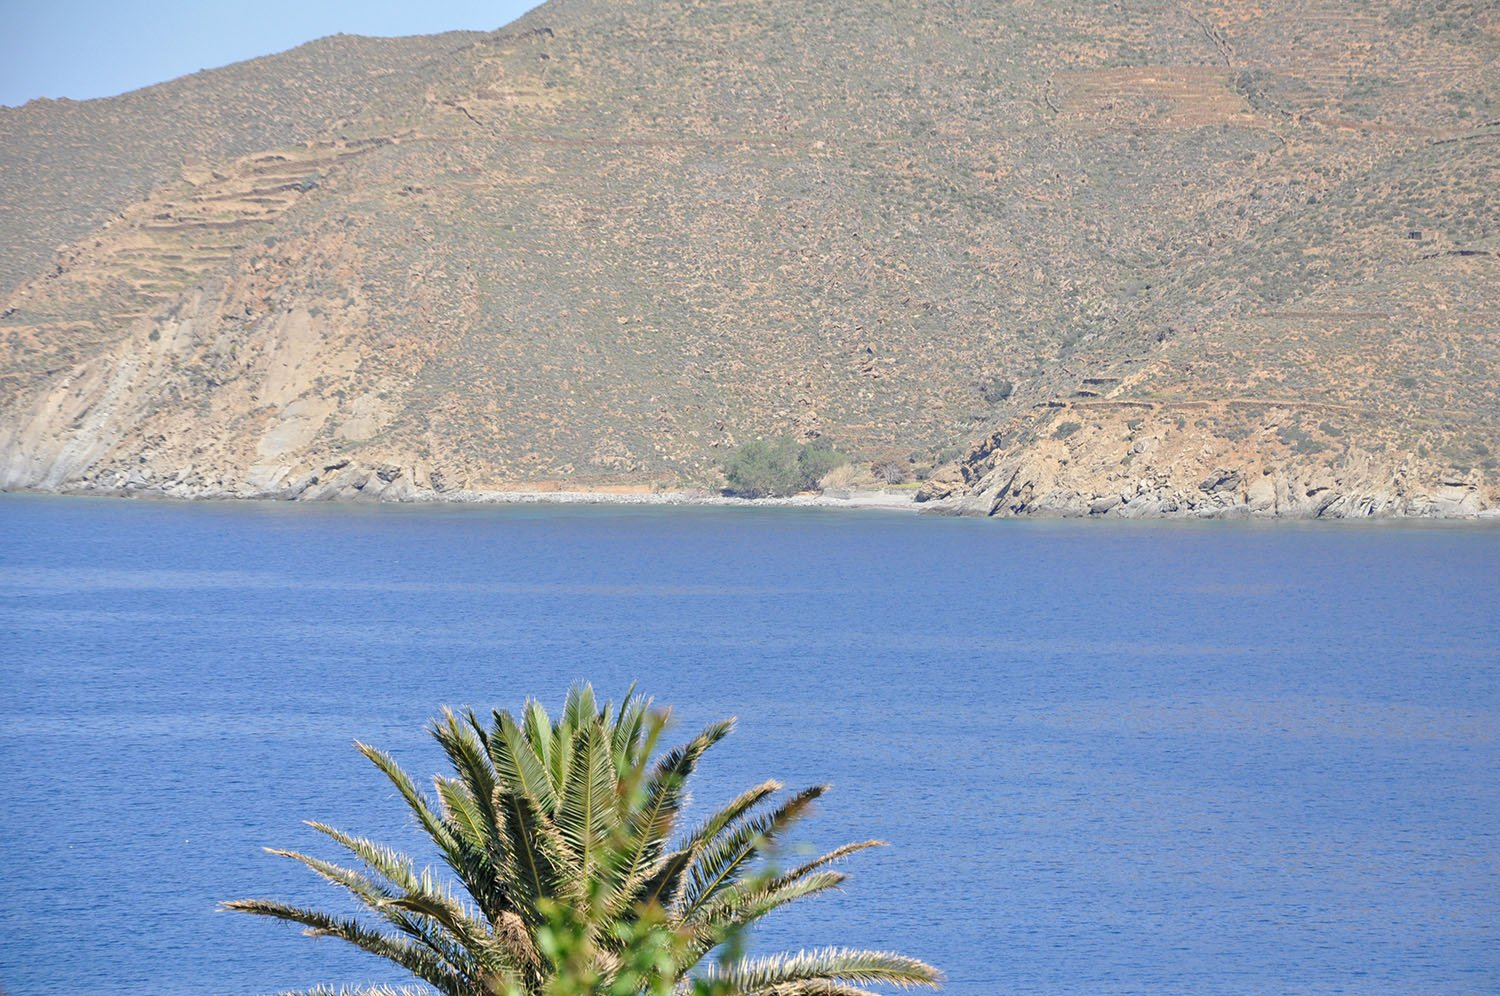 Chochlakas beach on Amorgos